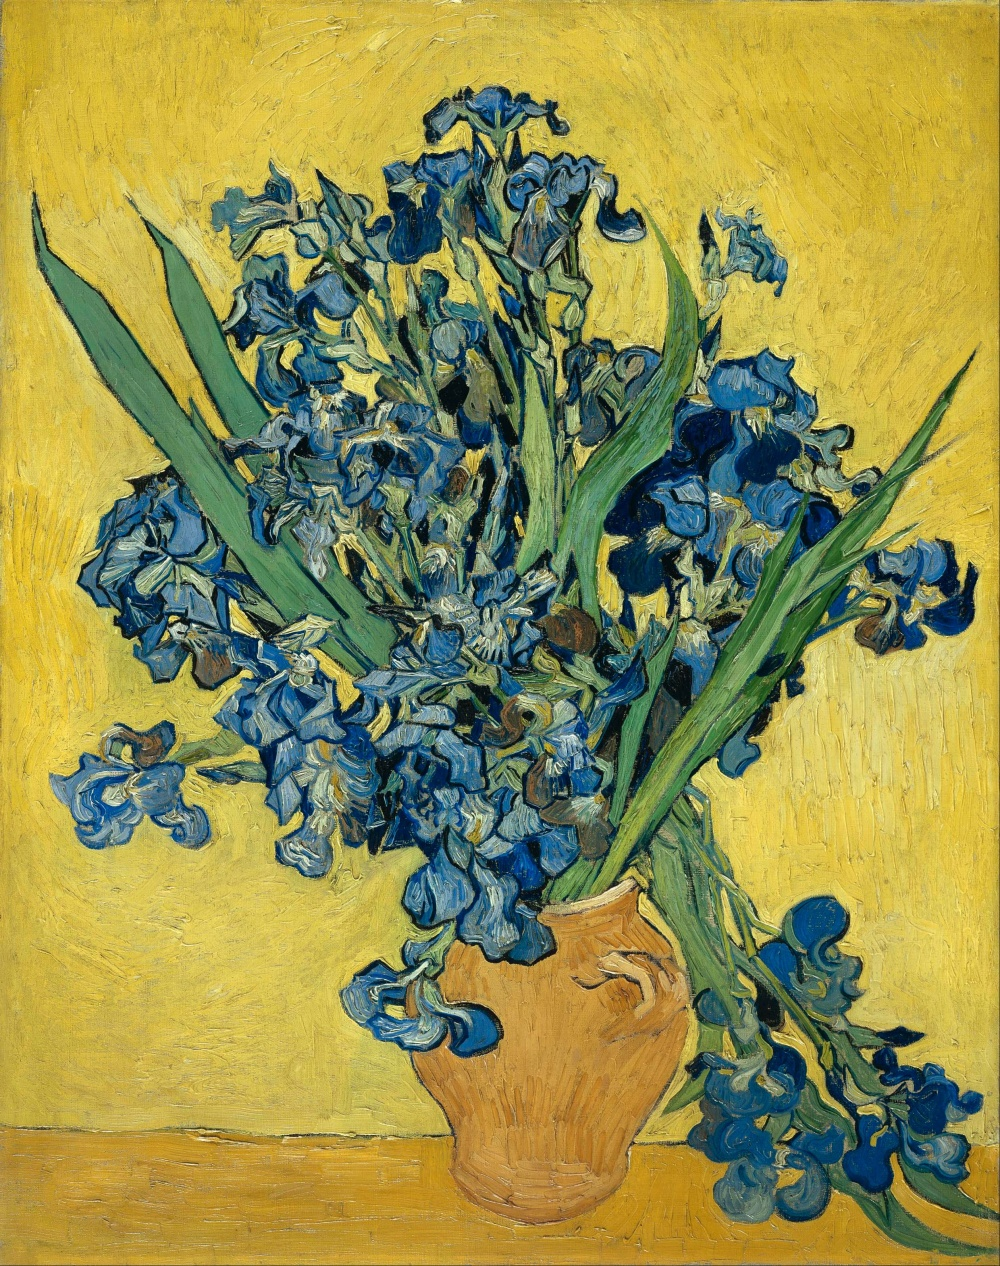 Vincent_van_Gogh_-_Irises_-_Google_Art_Project